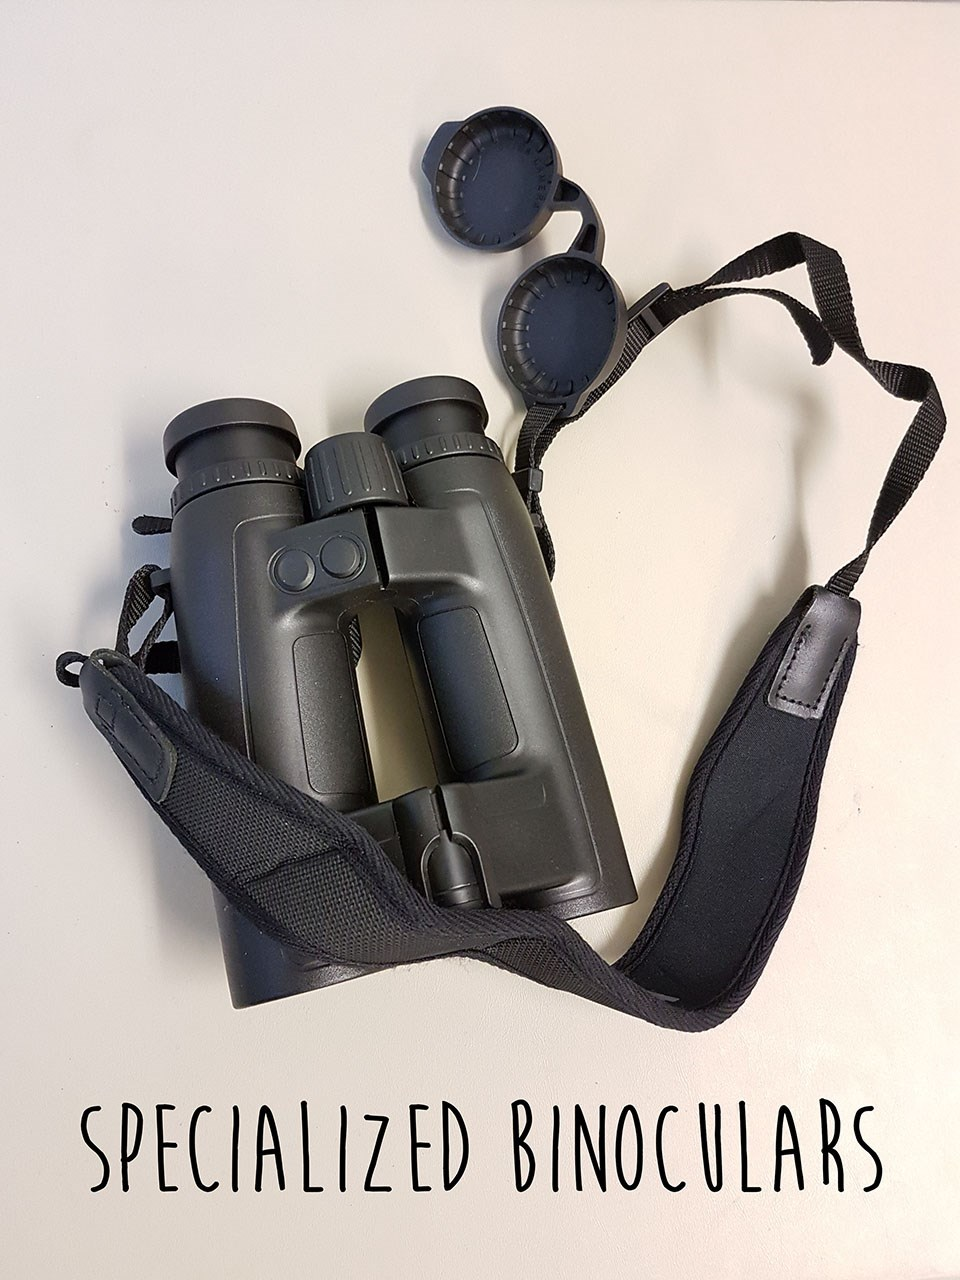 a pair of black binoculars on a white background with text reading Specialized Binoculars laid over top